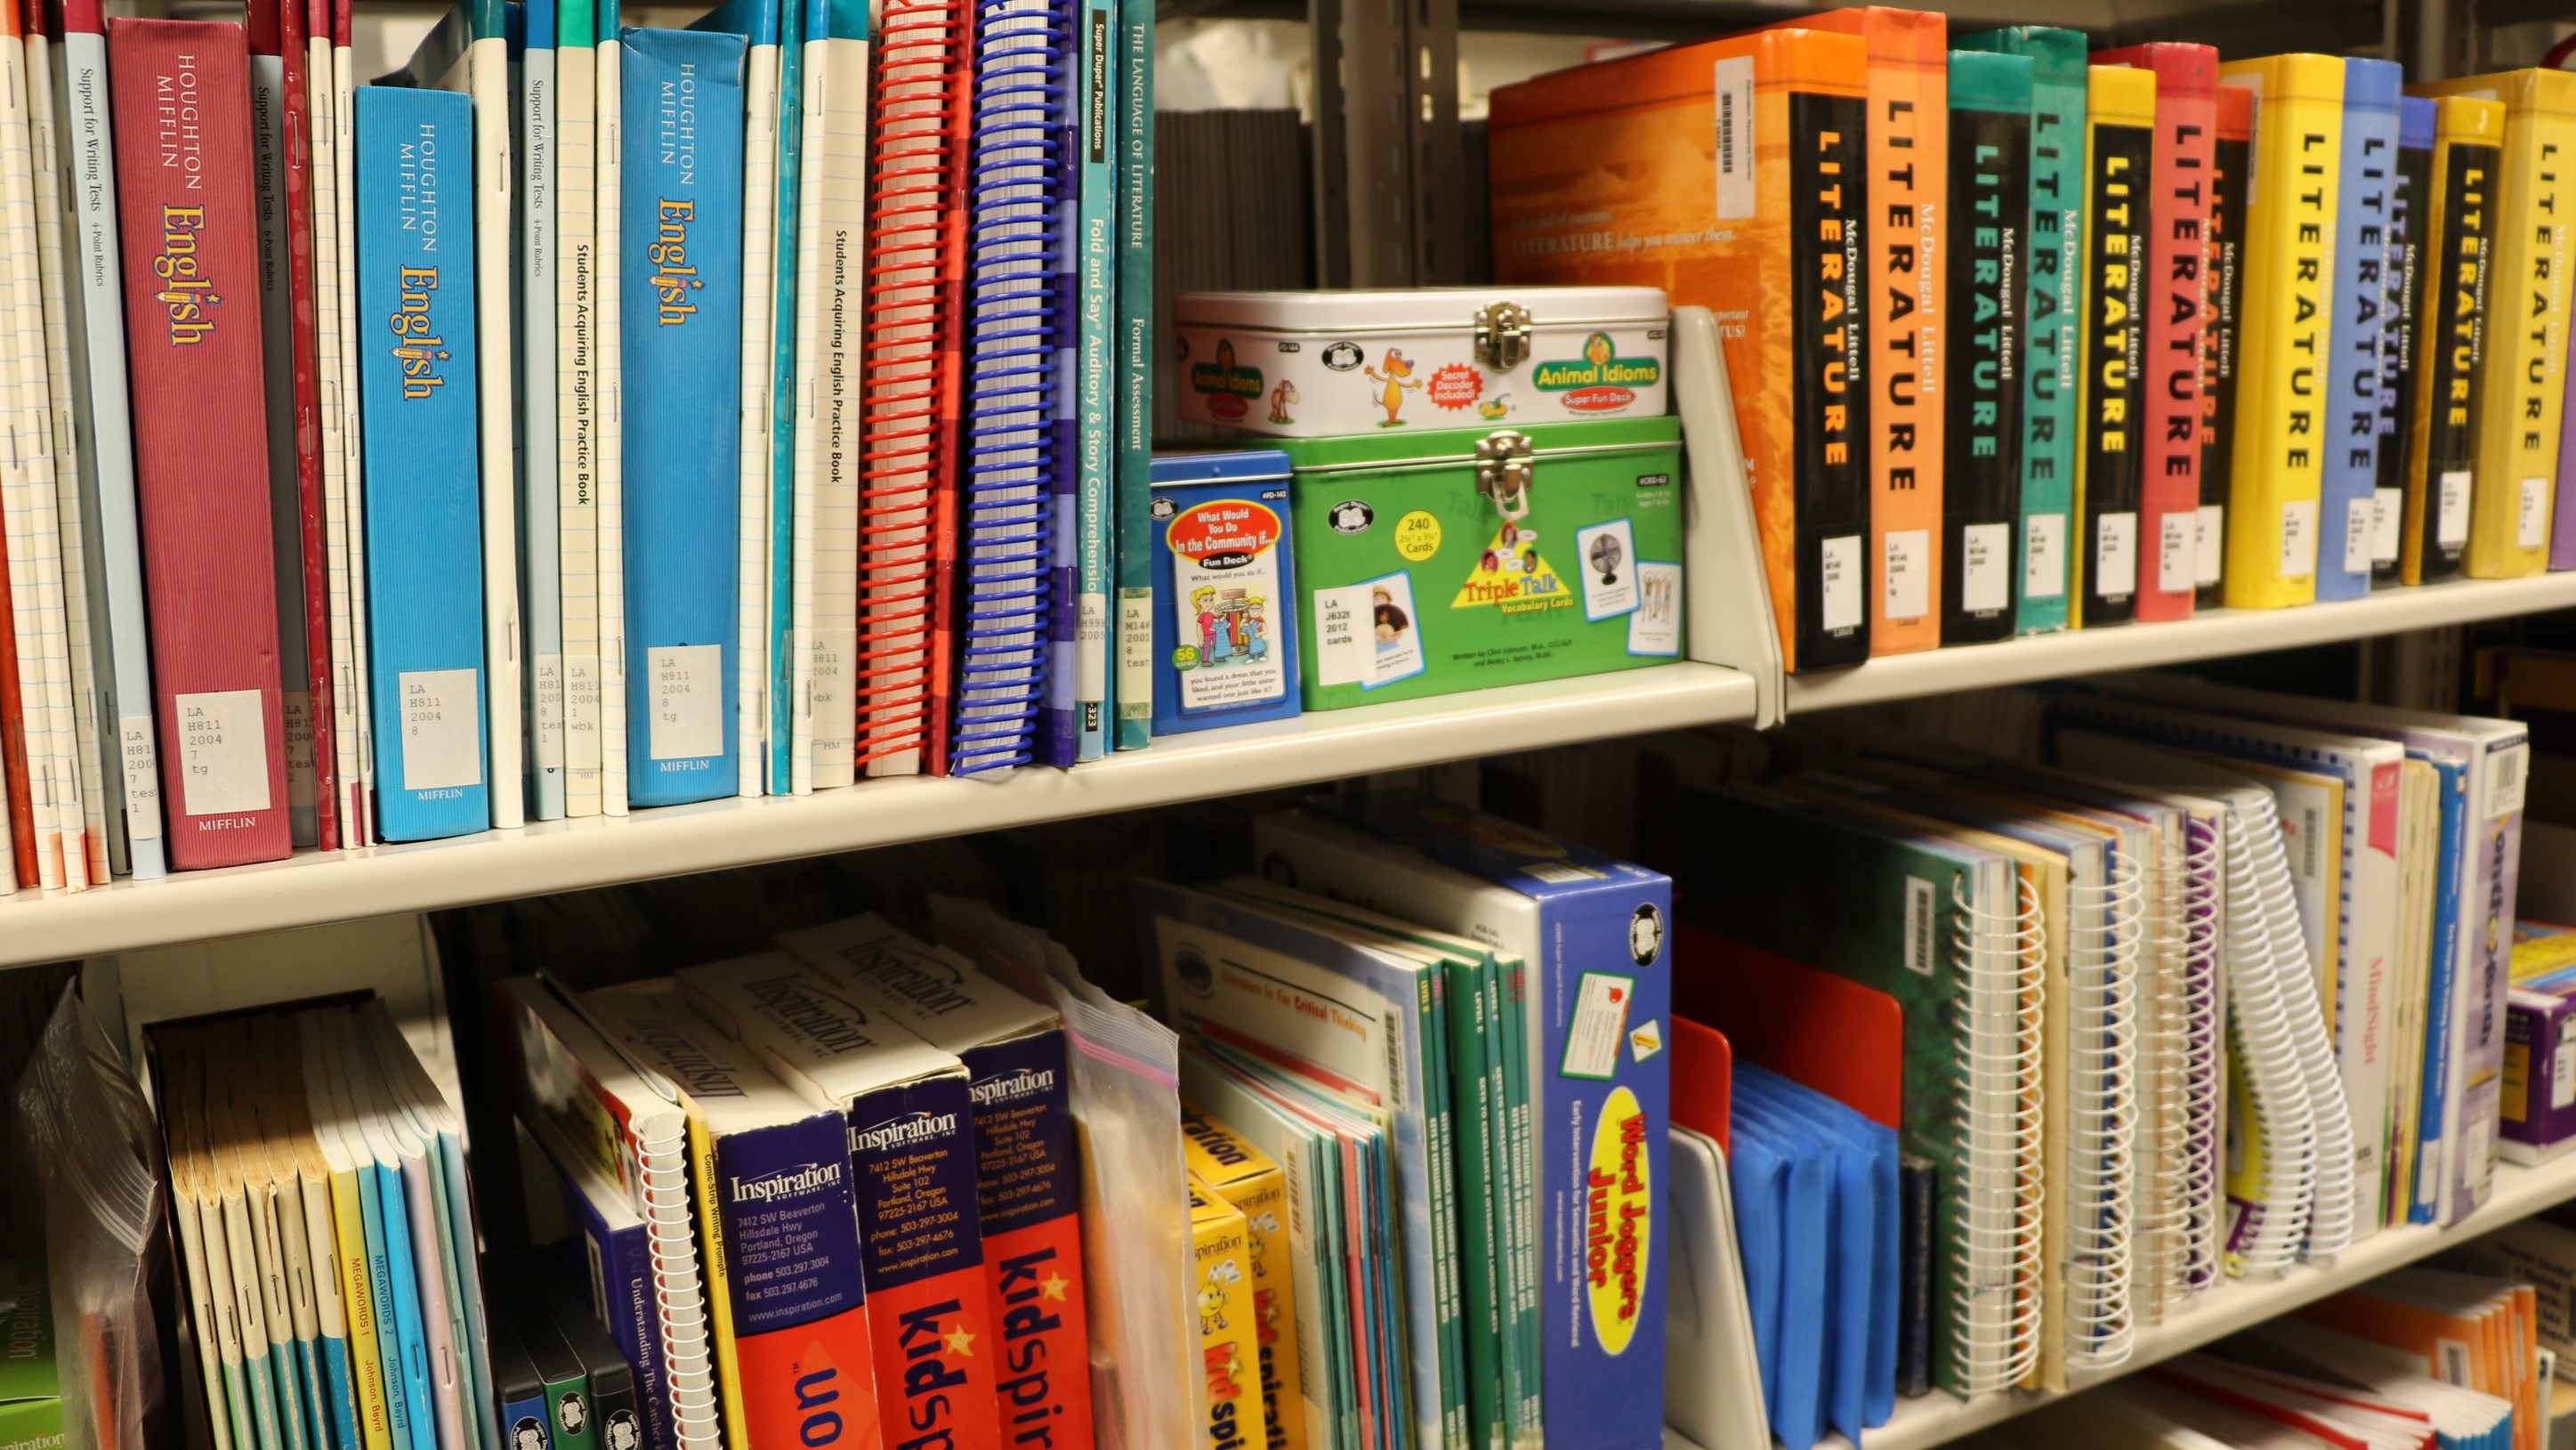 A row of books at the Educational Resource Center, including English and Literature guides.